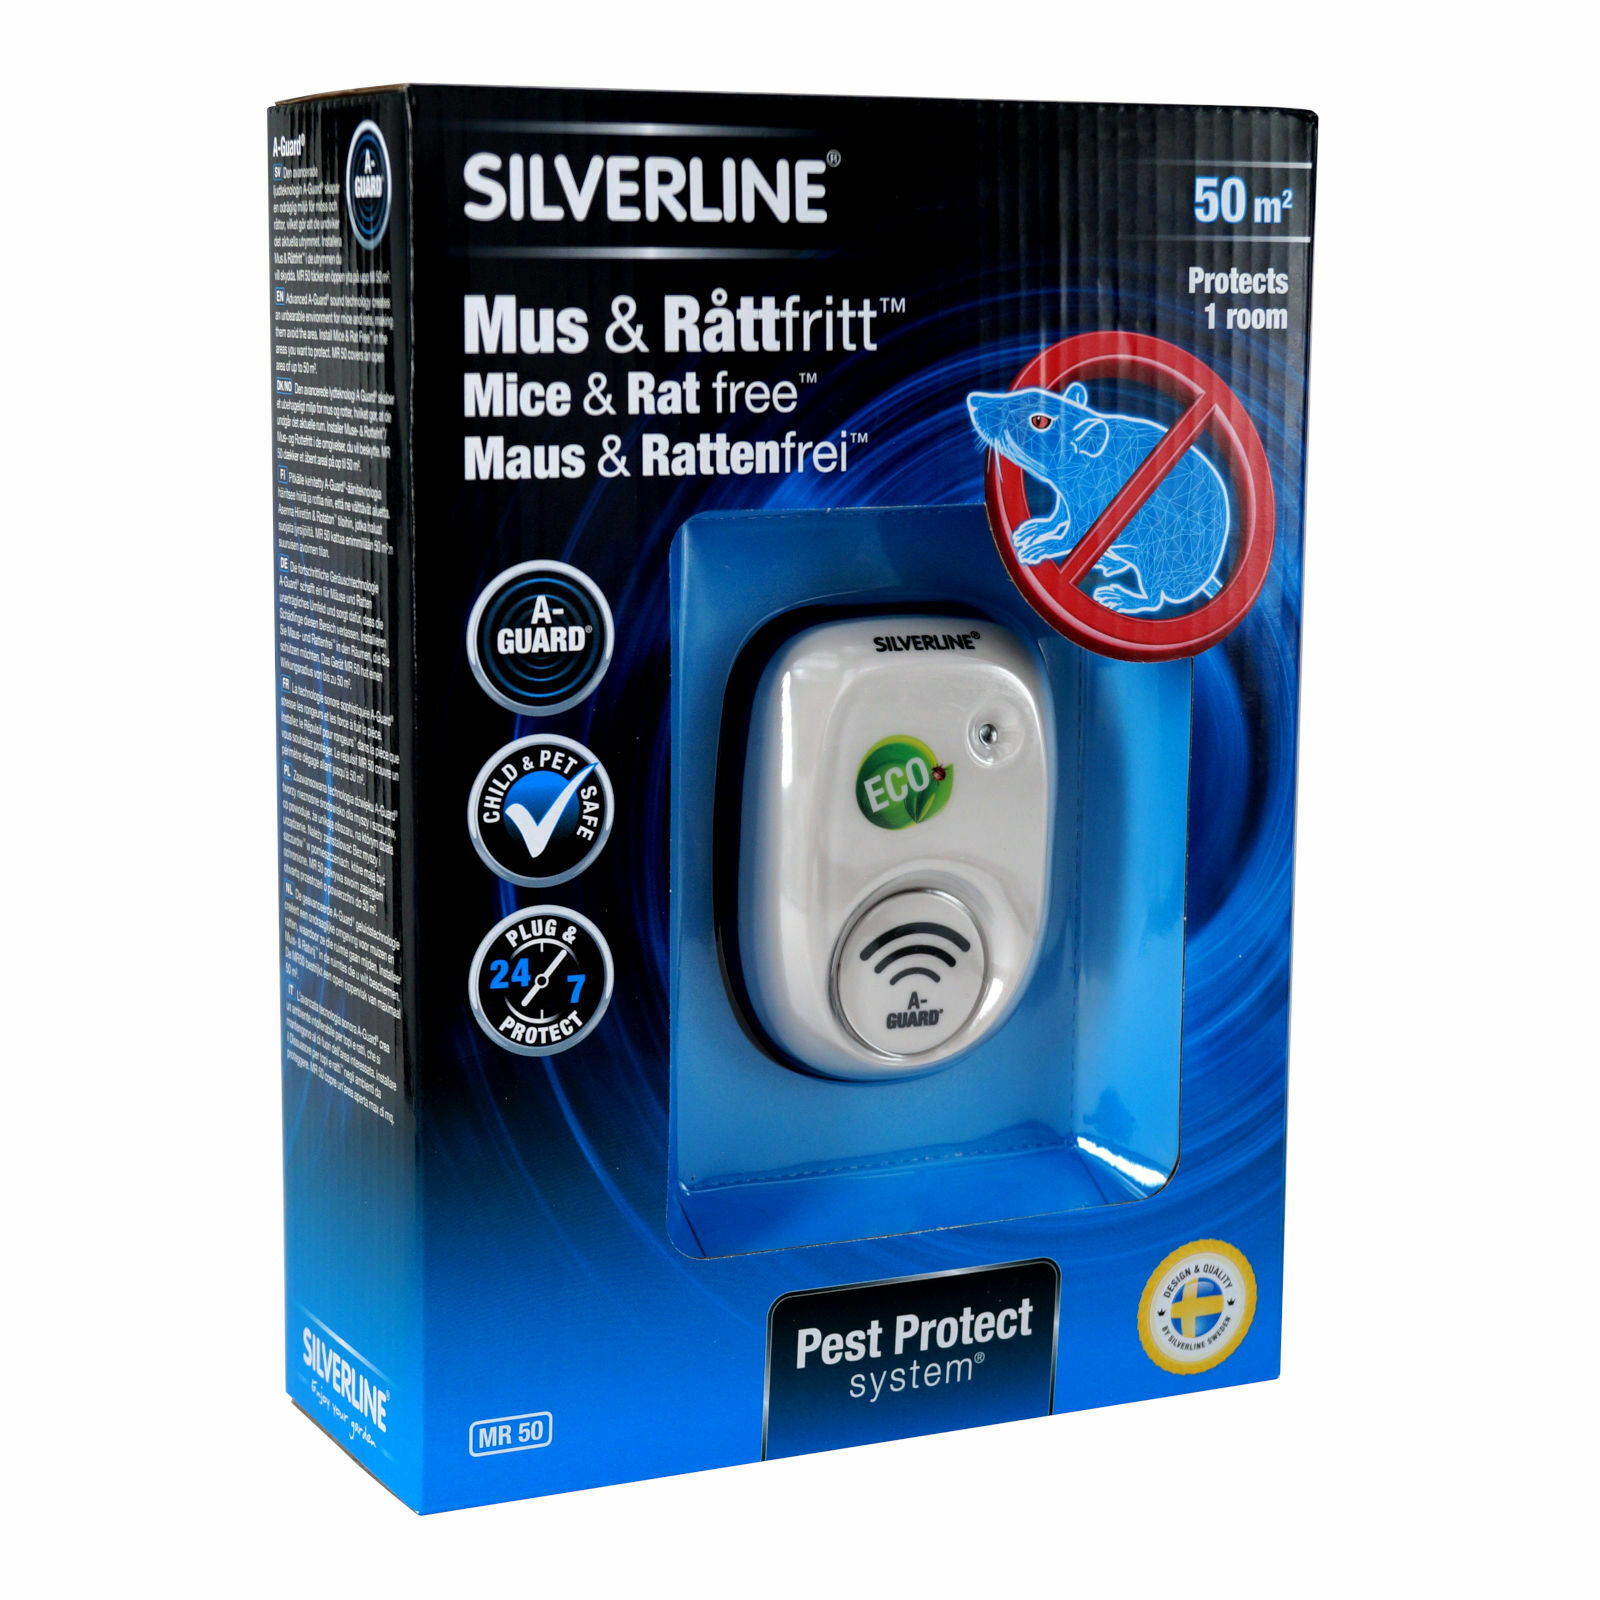 Silverline Mouse & Rat Free 50 M ² MR50 Ultras Sound Control Defence Protection